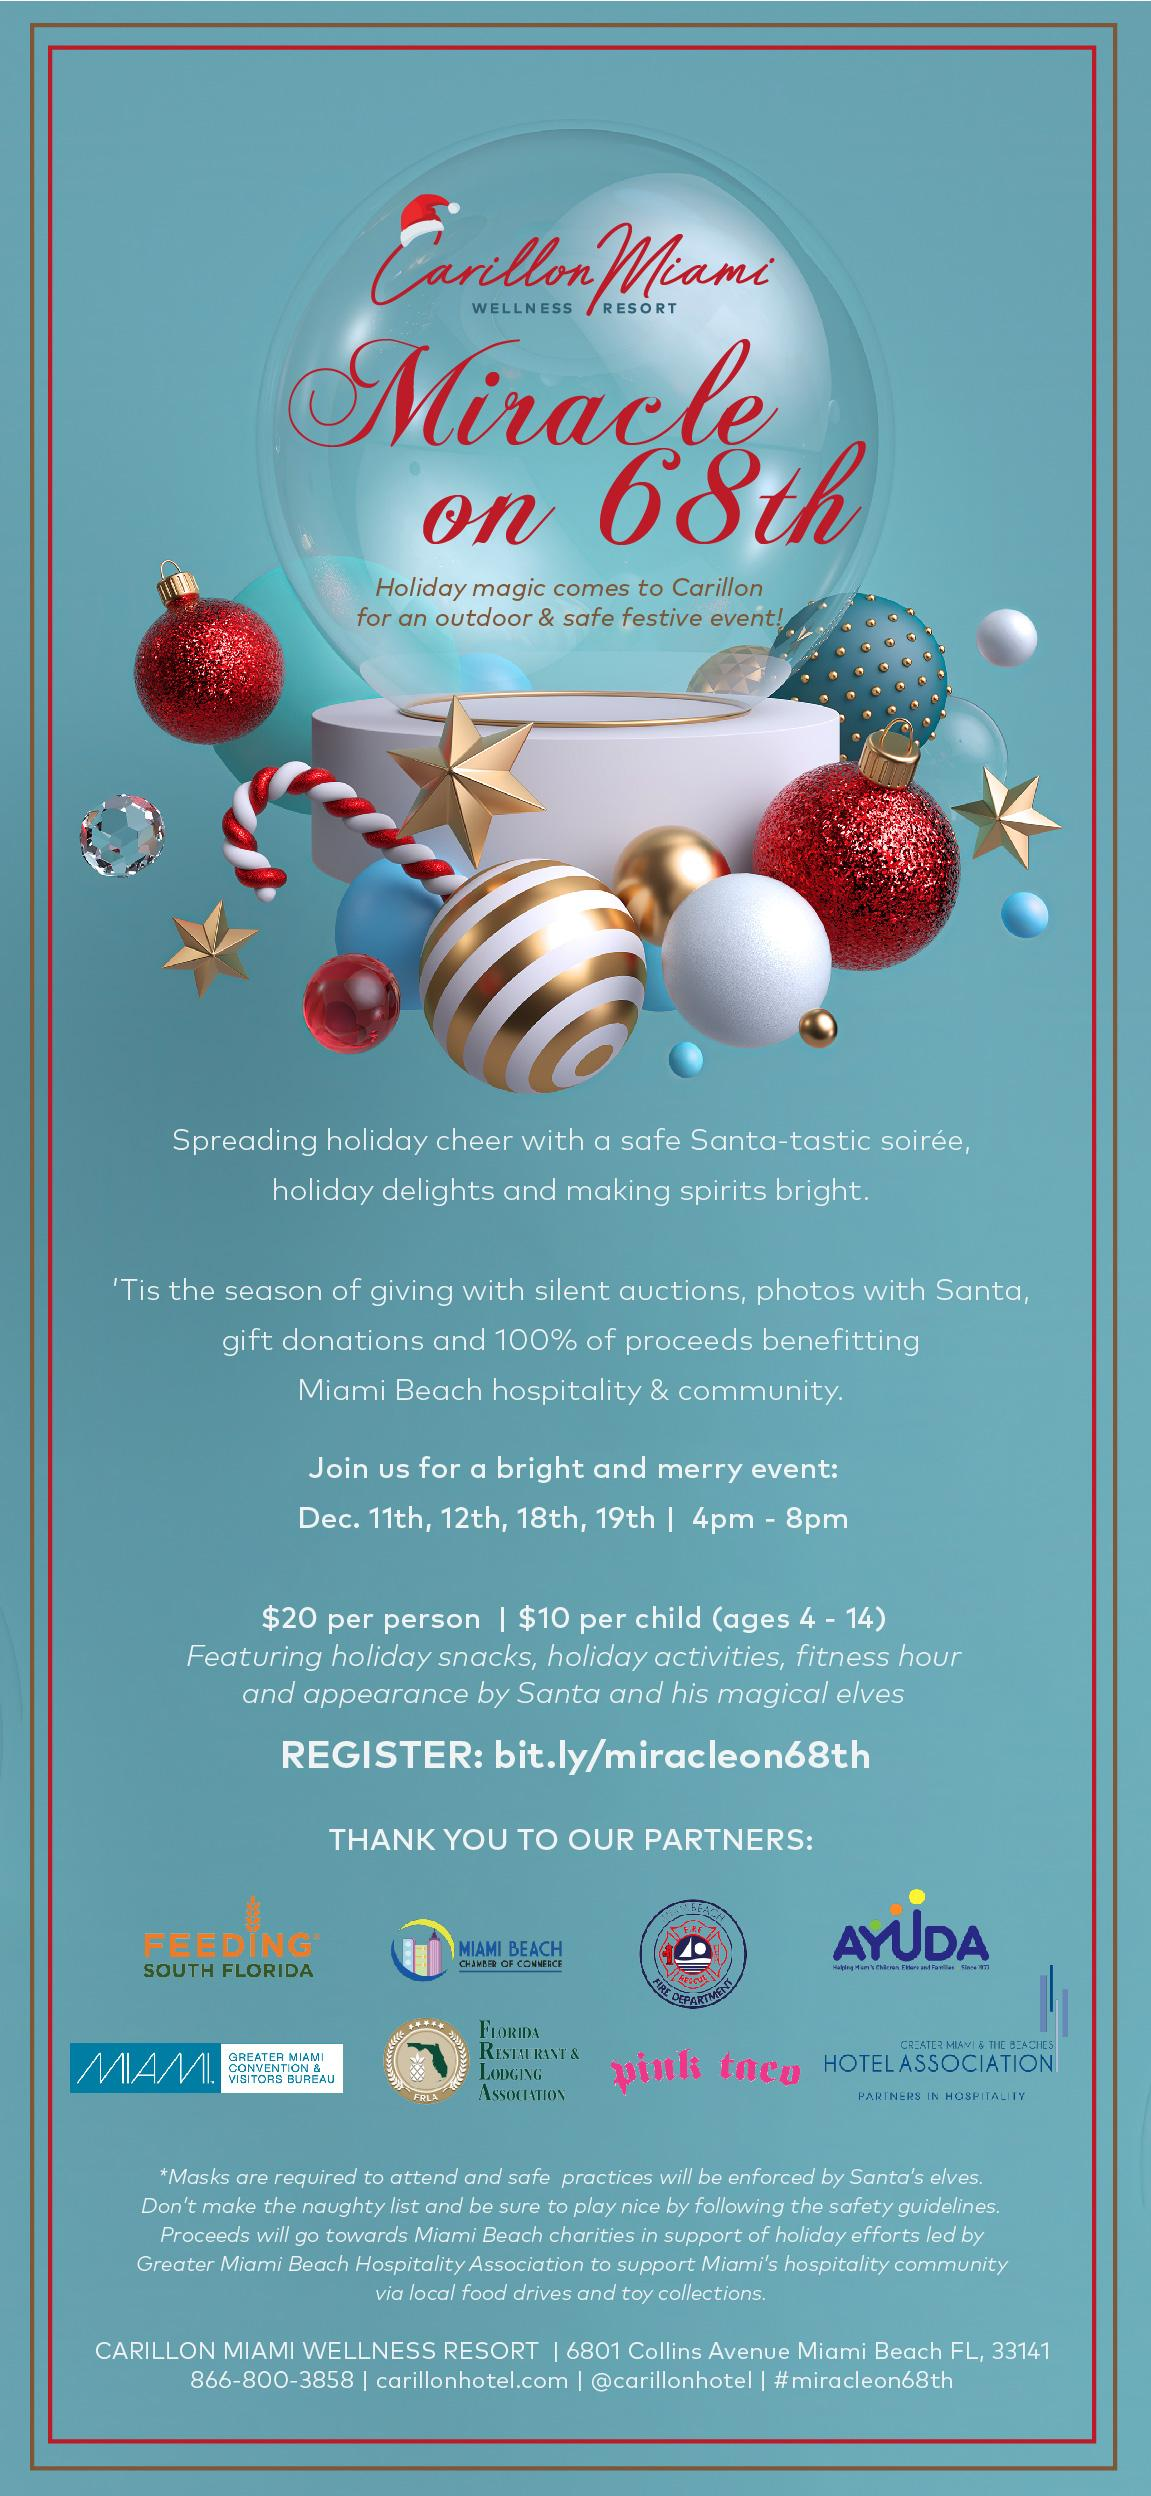 Carillion's Miracle on 68th Street Pop-Up Event